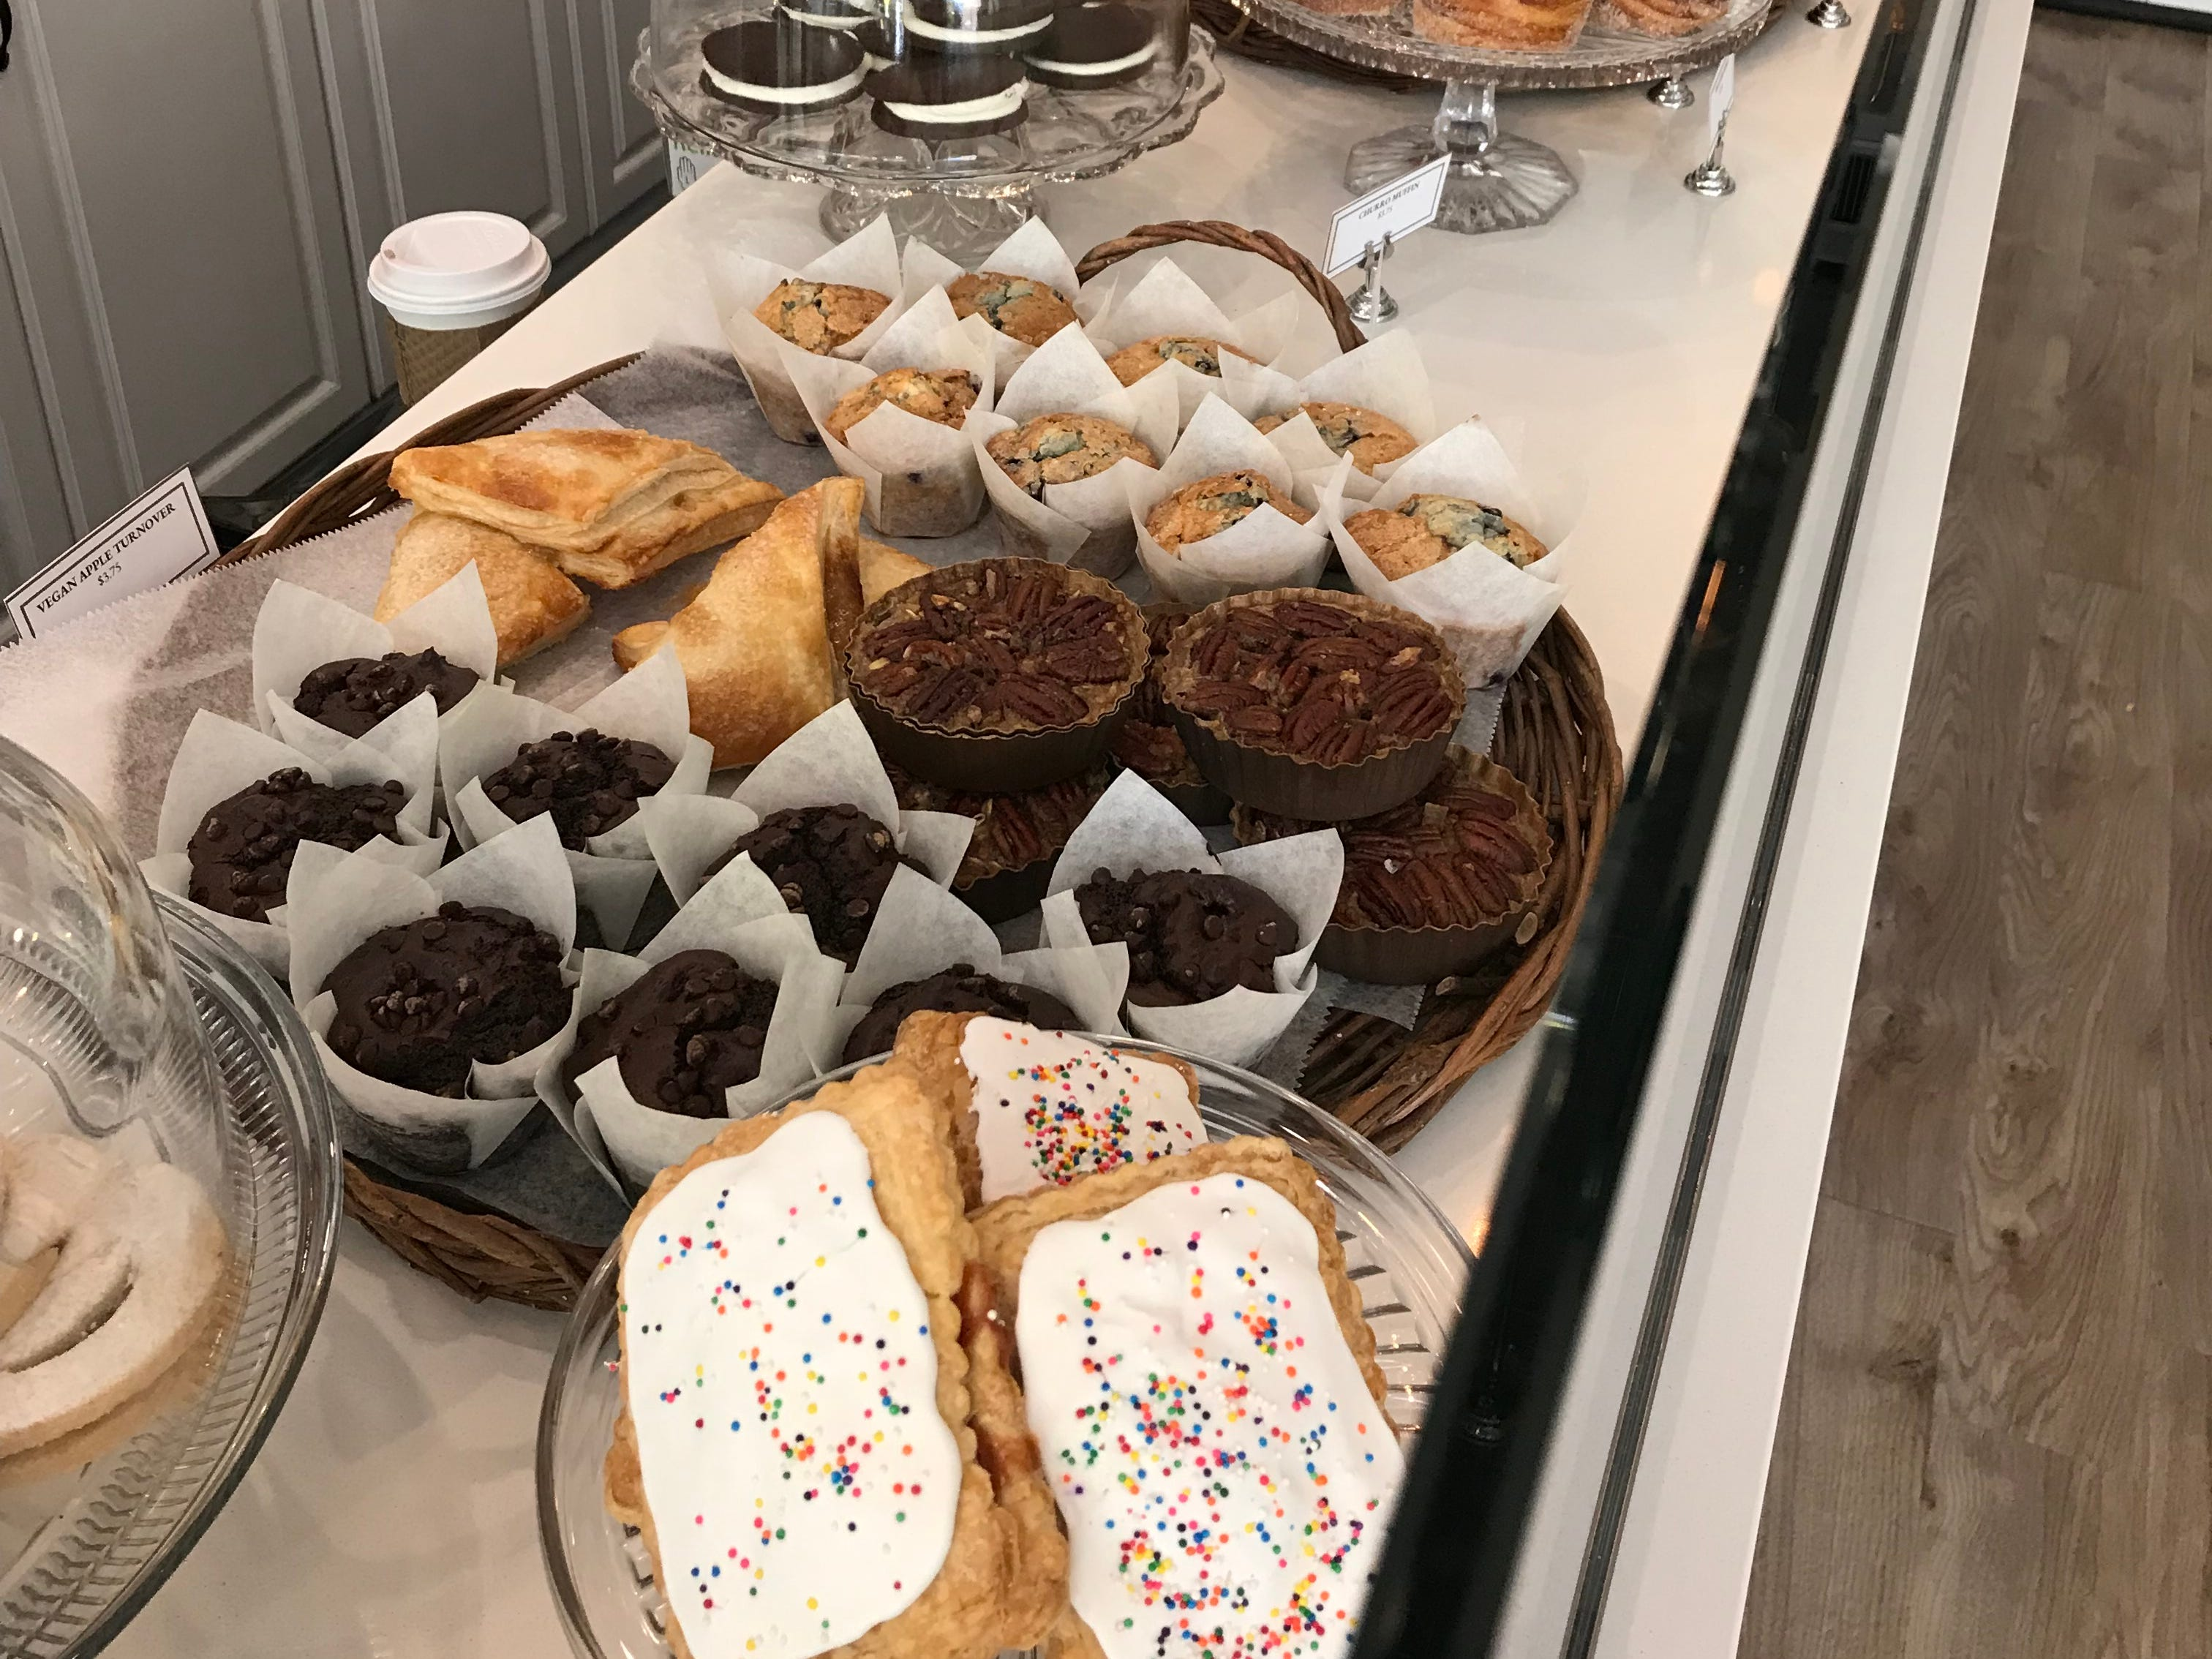 Some of the goodies at The Snackery Bake Shop in Larchmont.